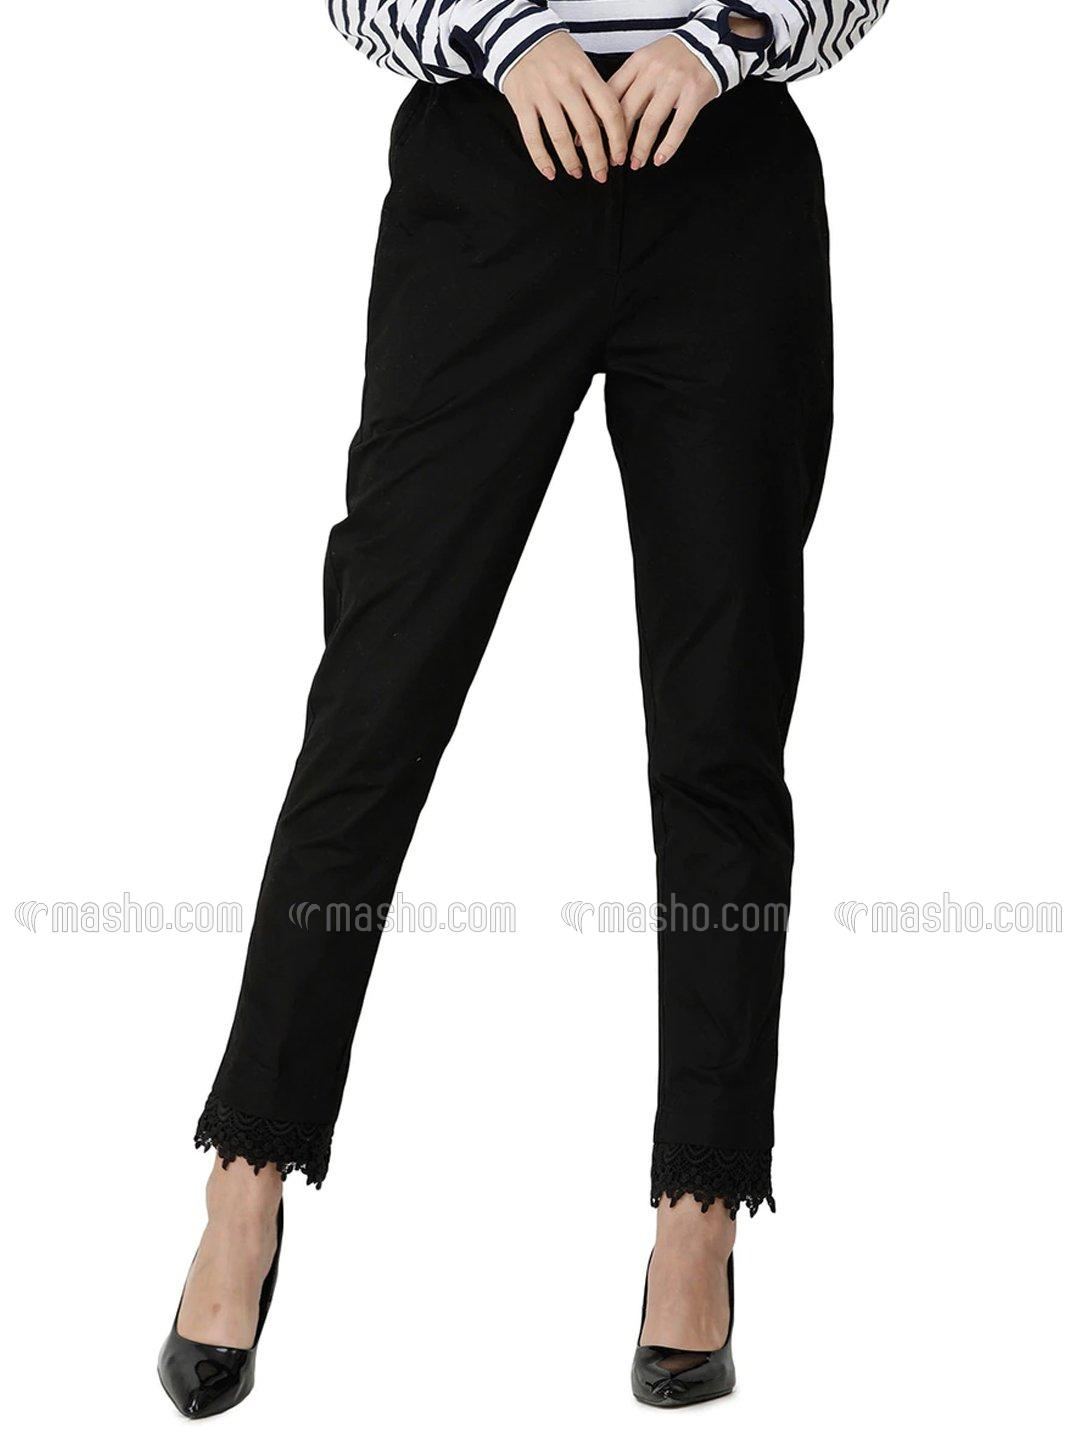 100% Cotton Trouser Extendable Waist And Lace Work In Black